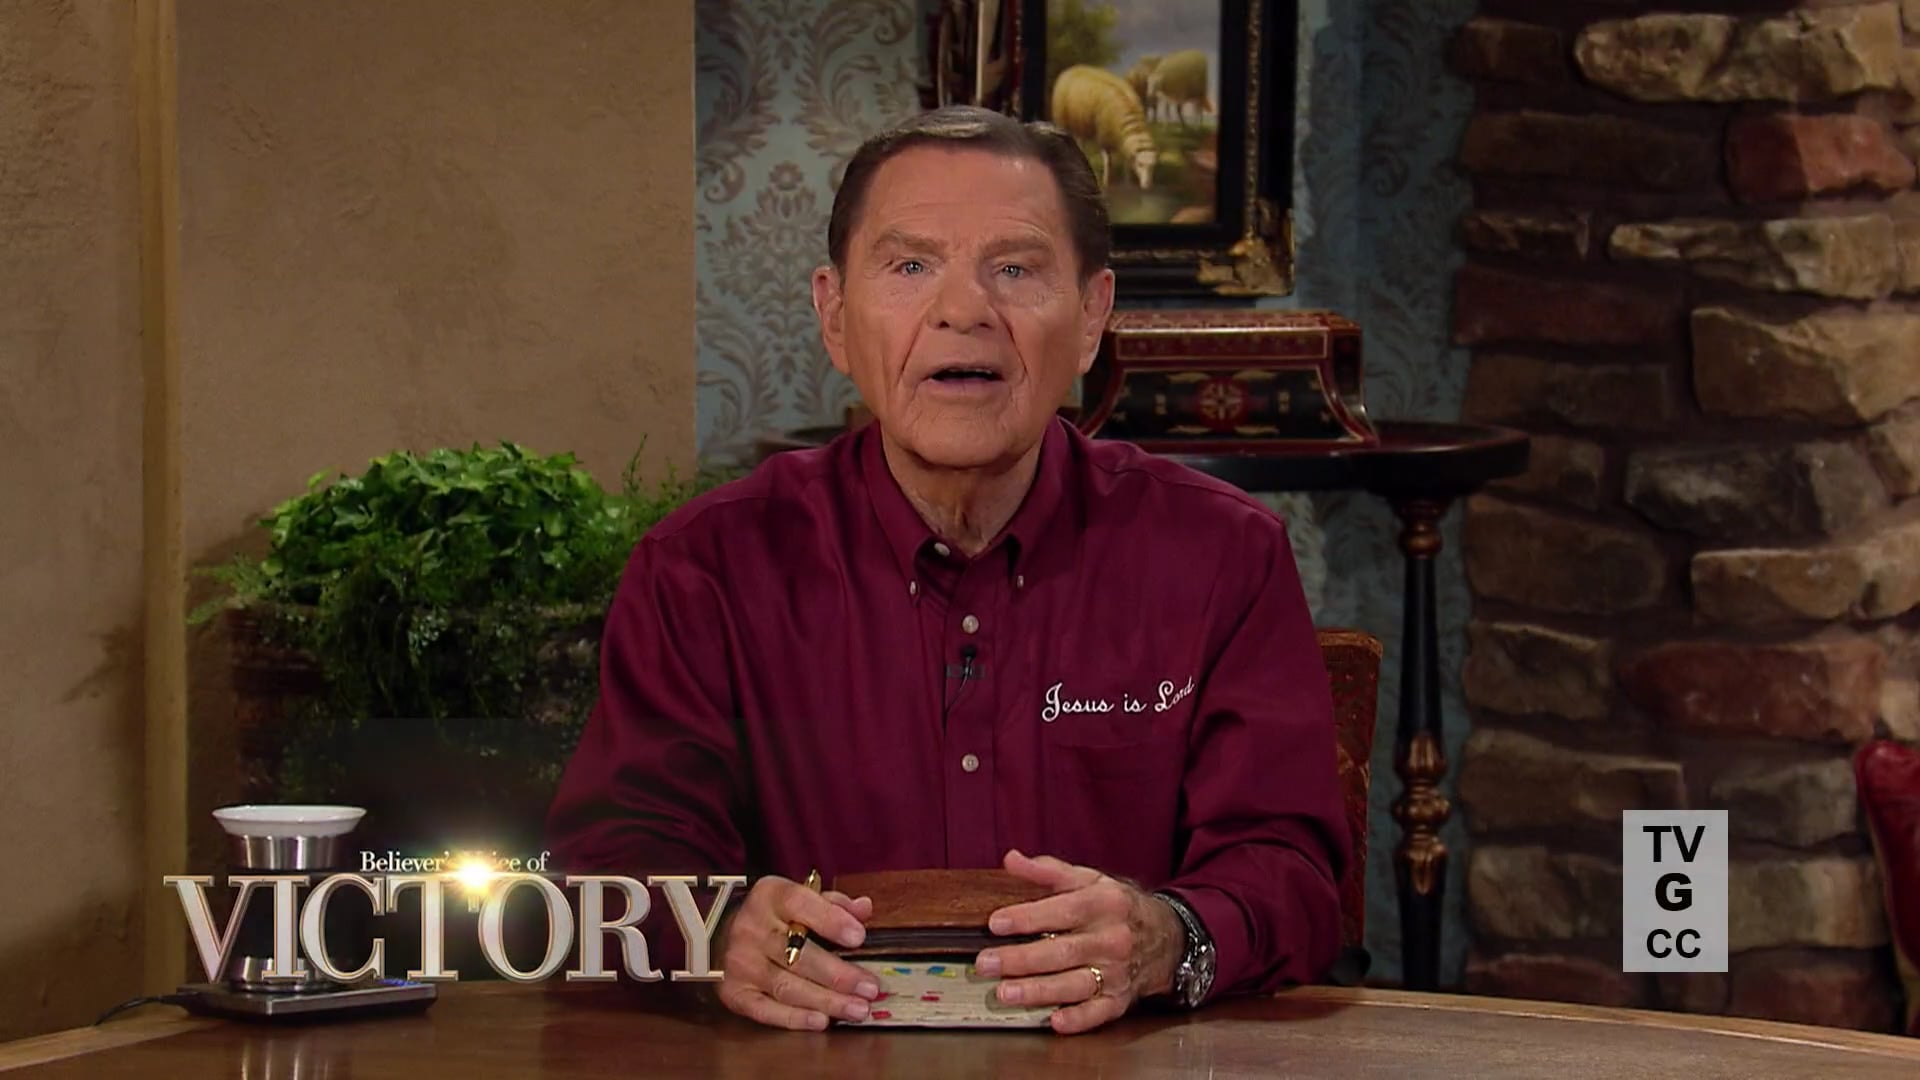 Faith is not a complicated formula that only a few can master. Faith works for anyone who chooses to believe God. Today, on Believer's Voice of Victory, Kenneth Copeland gives four simple steps from God's WORD to demonstrate how faith works.